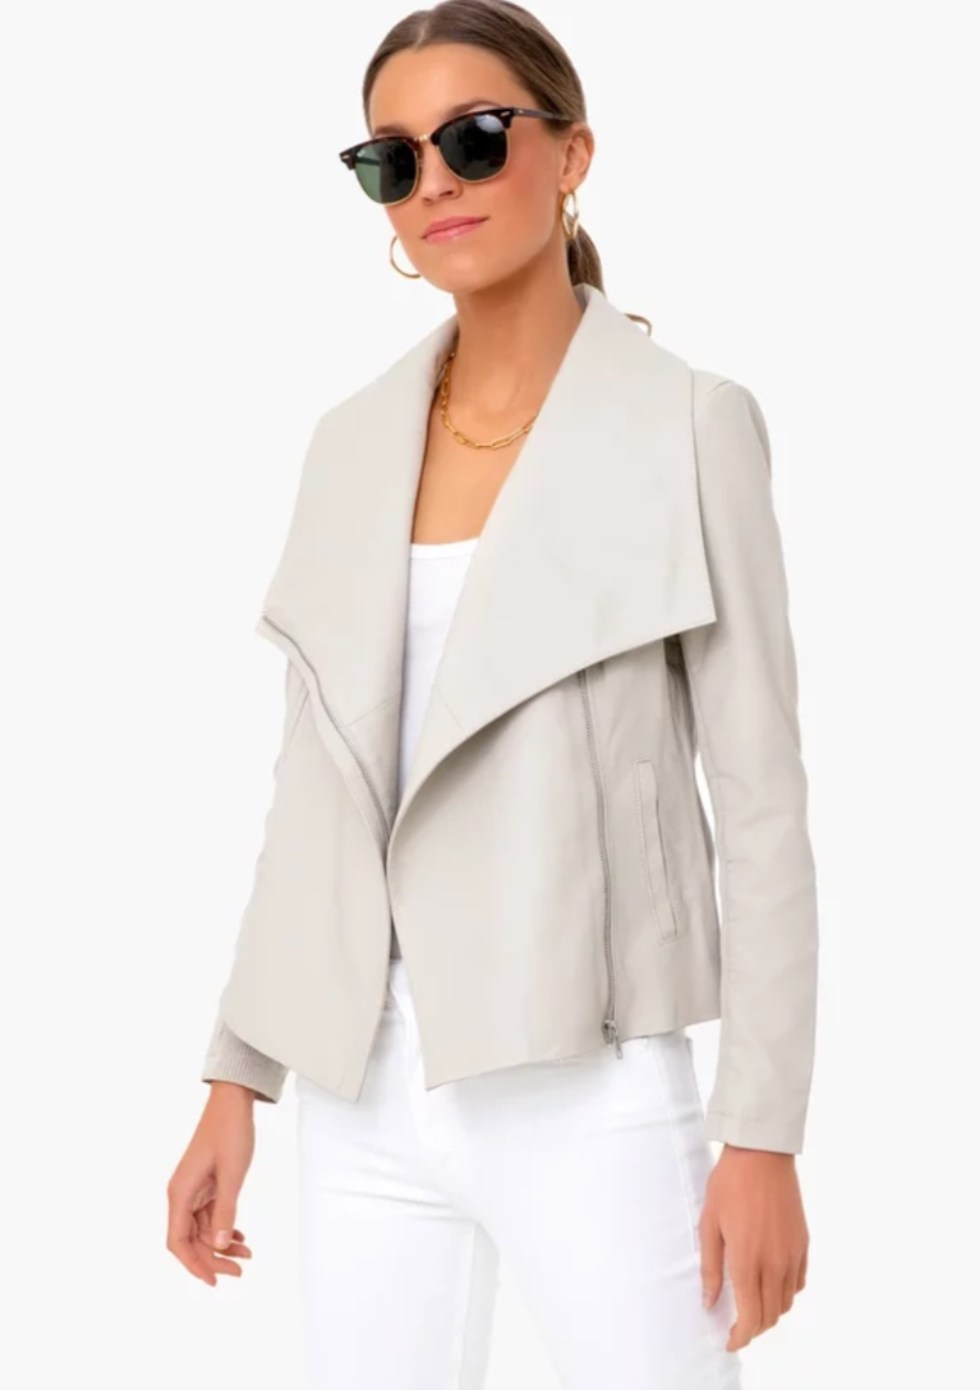 What I'm Eyeing for Early Spring - I'm Fixin' To - @imfixintoblog |Early Spring Fashion by popular NC fashion blog, I'm Fixin' To: image of a B.B. Dakota Bone Up to Speed Jacket.